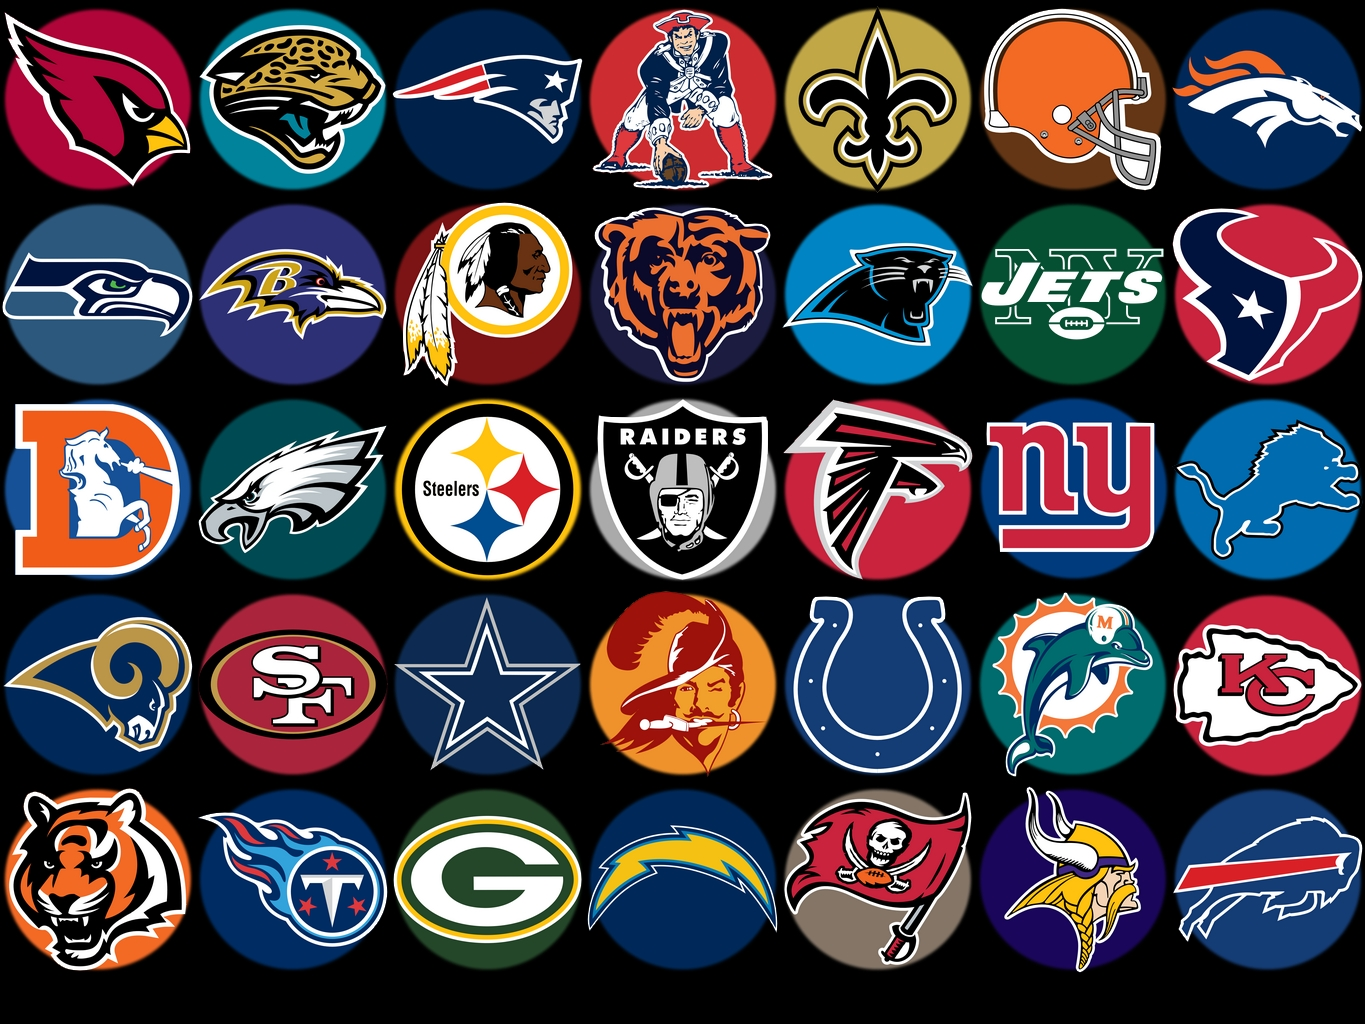 48+] All NFL Team Logo Wallpapers on WallpaperSafari.